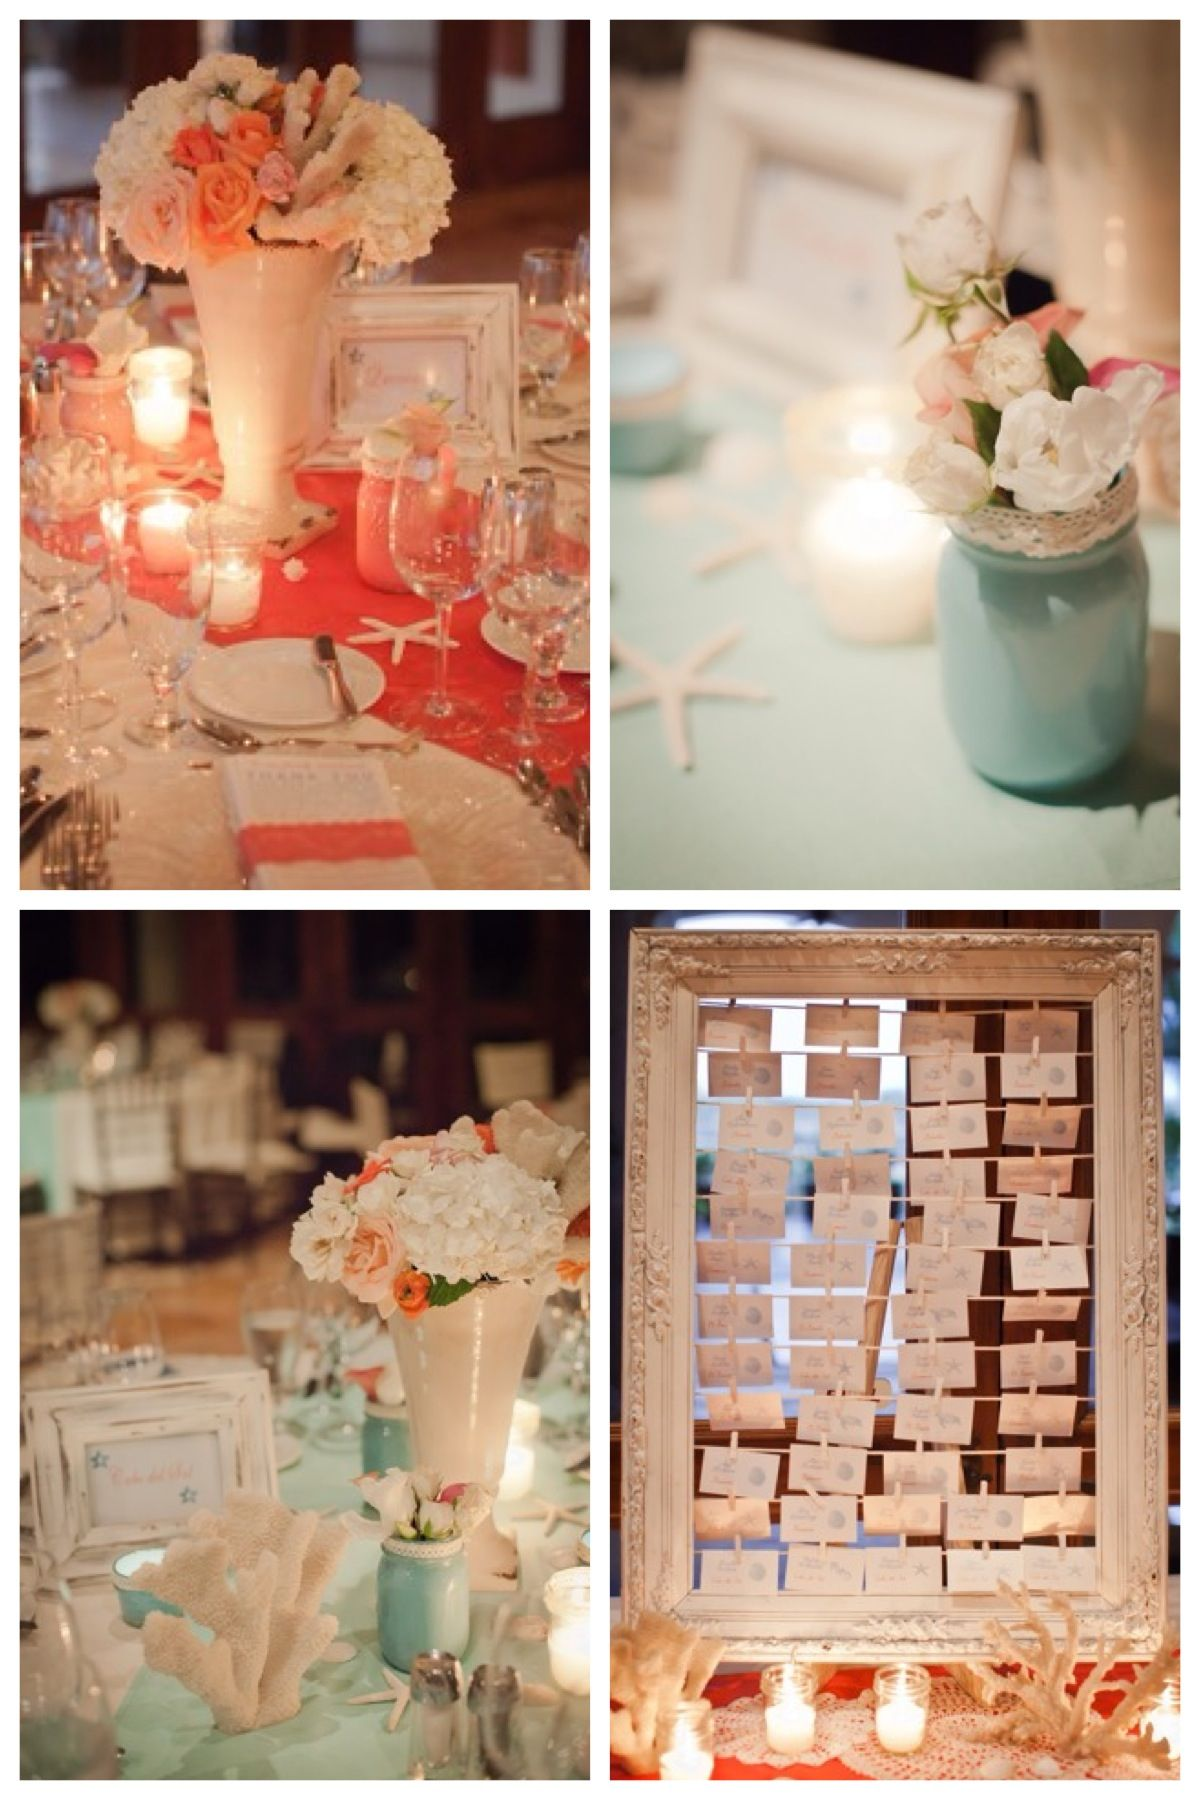 Vintage Beach Decorating Ideas coral & turquoise vintage beach wedding decor these ideas are